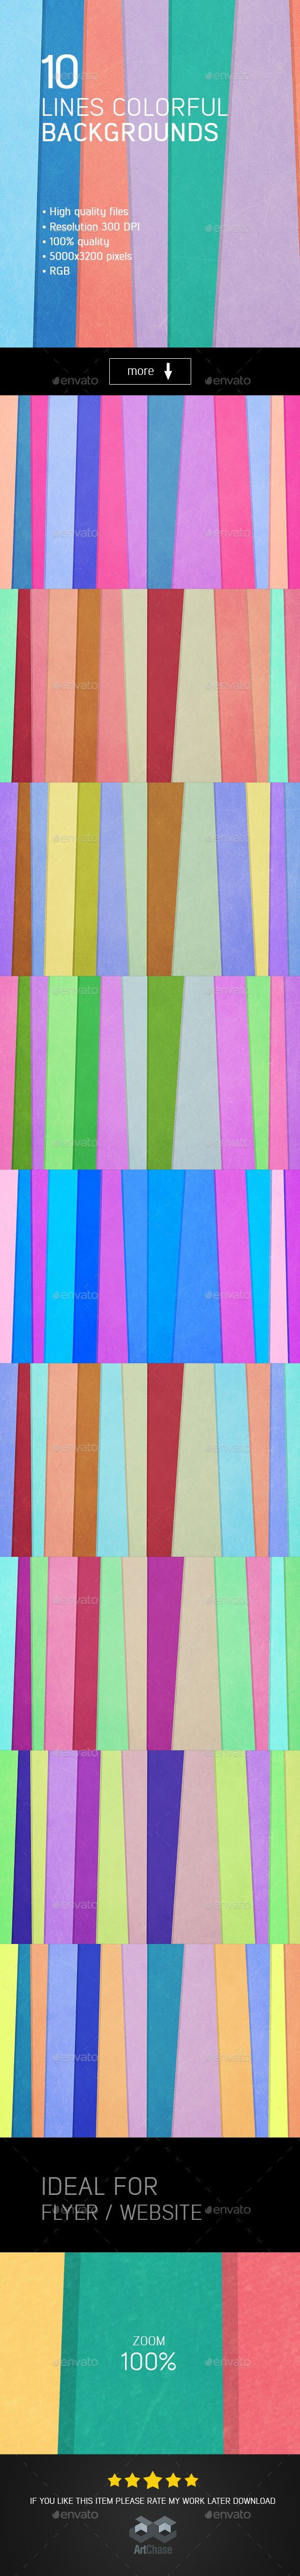 10 Lines Colorful Backgrounds - Abstract Backgrounds